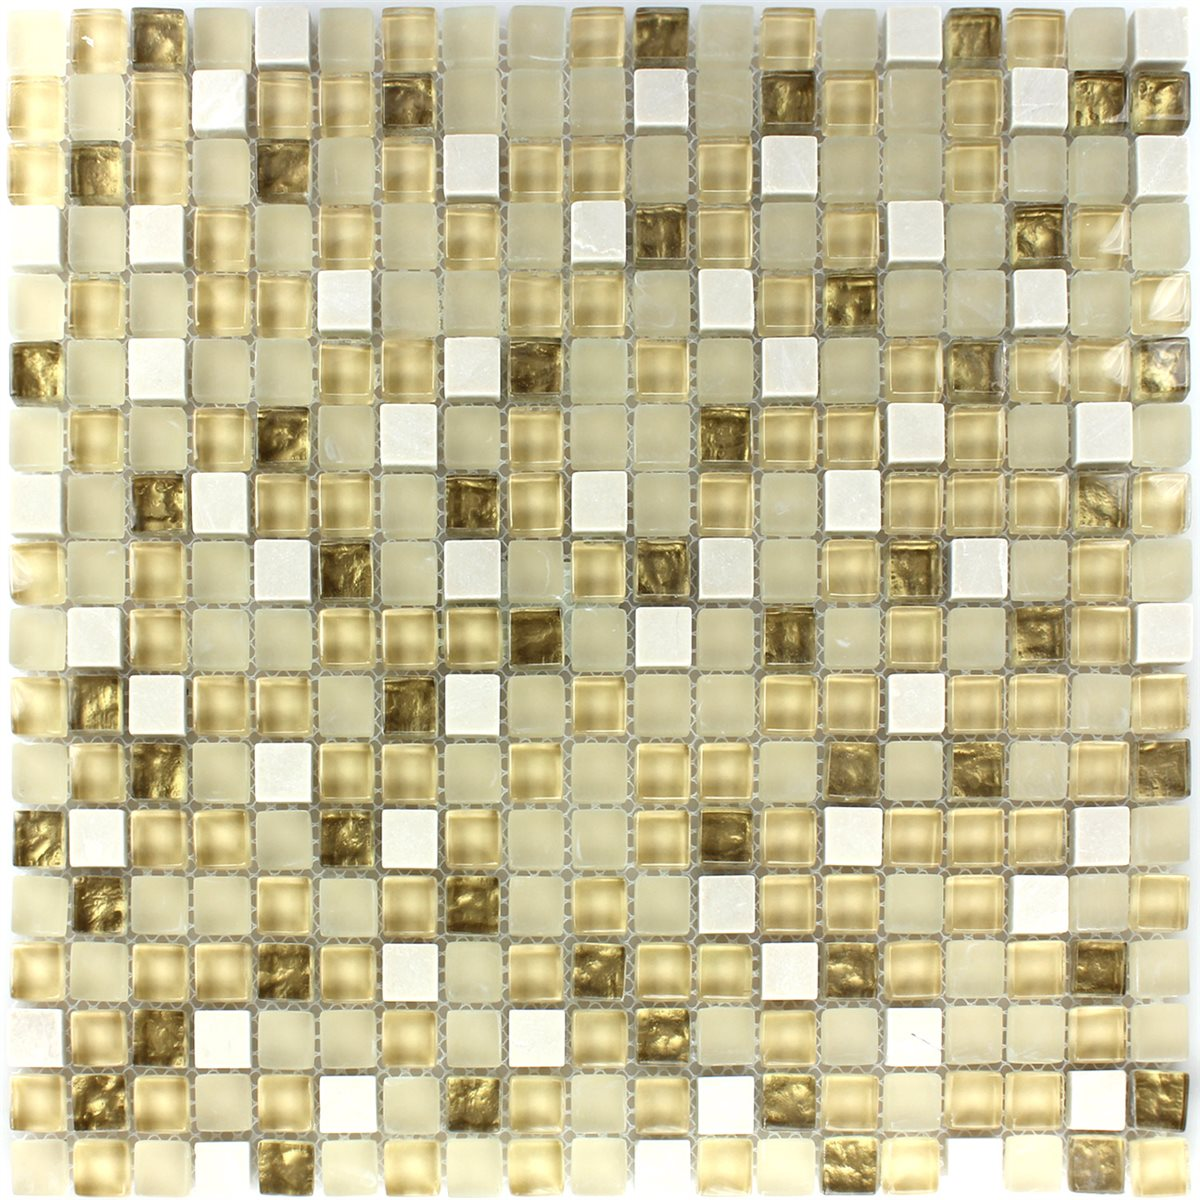 mosaik fliser glas natursten hvid guld mix tm33100m. Black Bedroom Furniture Sets. Home Design Ideas